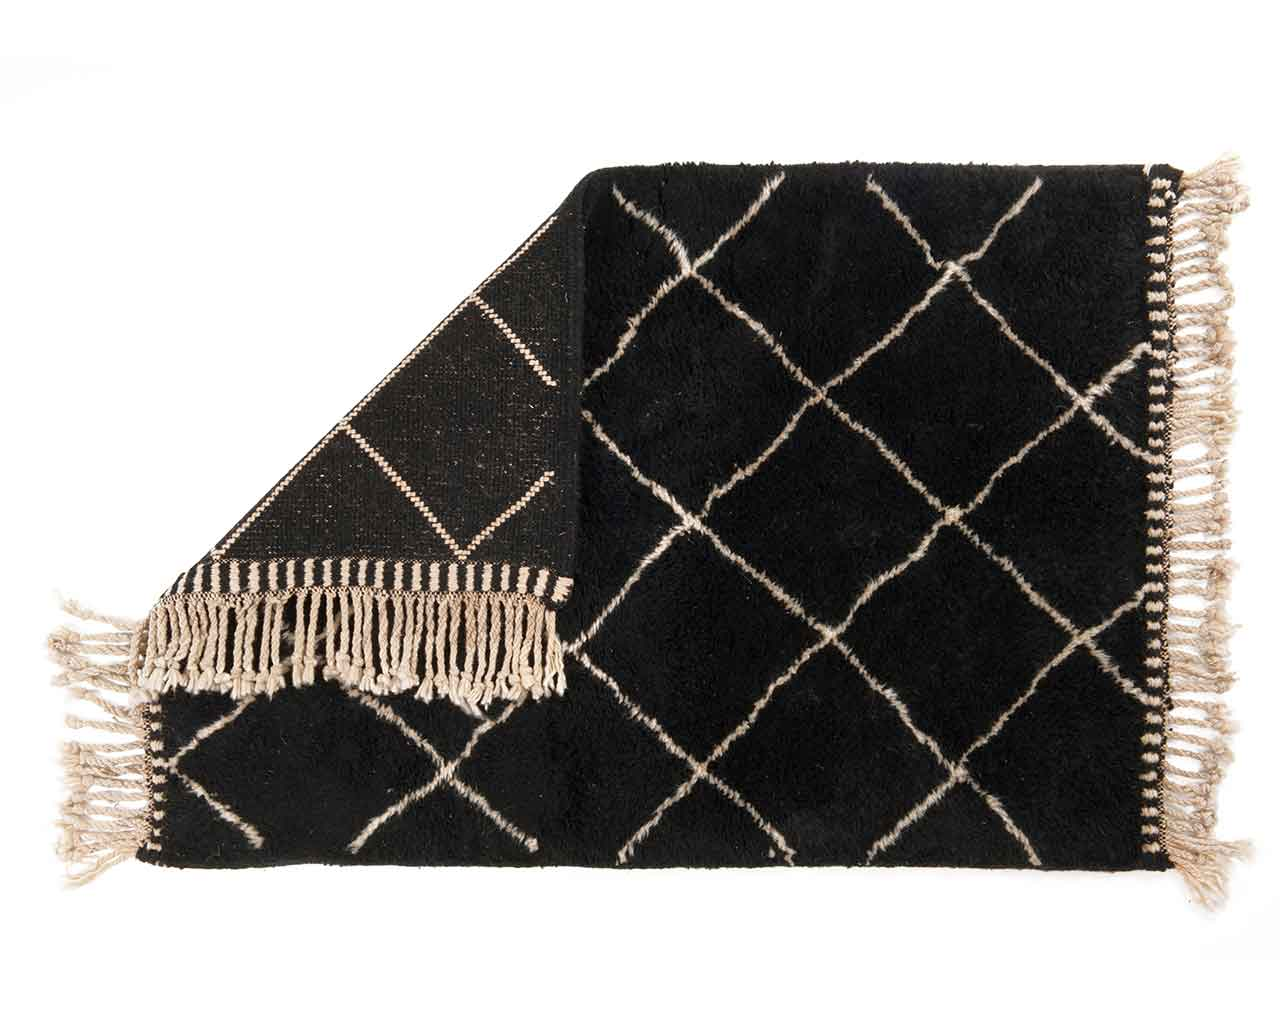 black beni ourain woollen carpet white diamond pattern 2